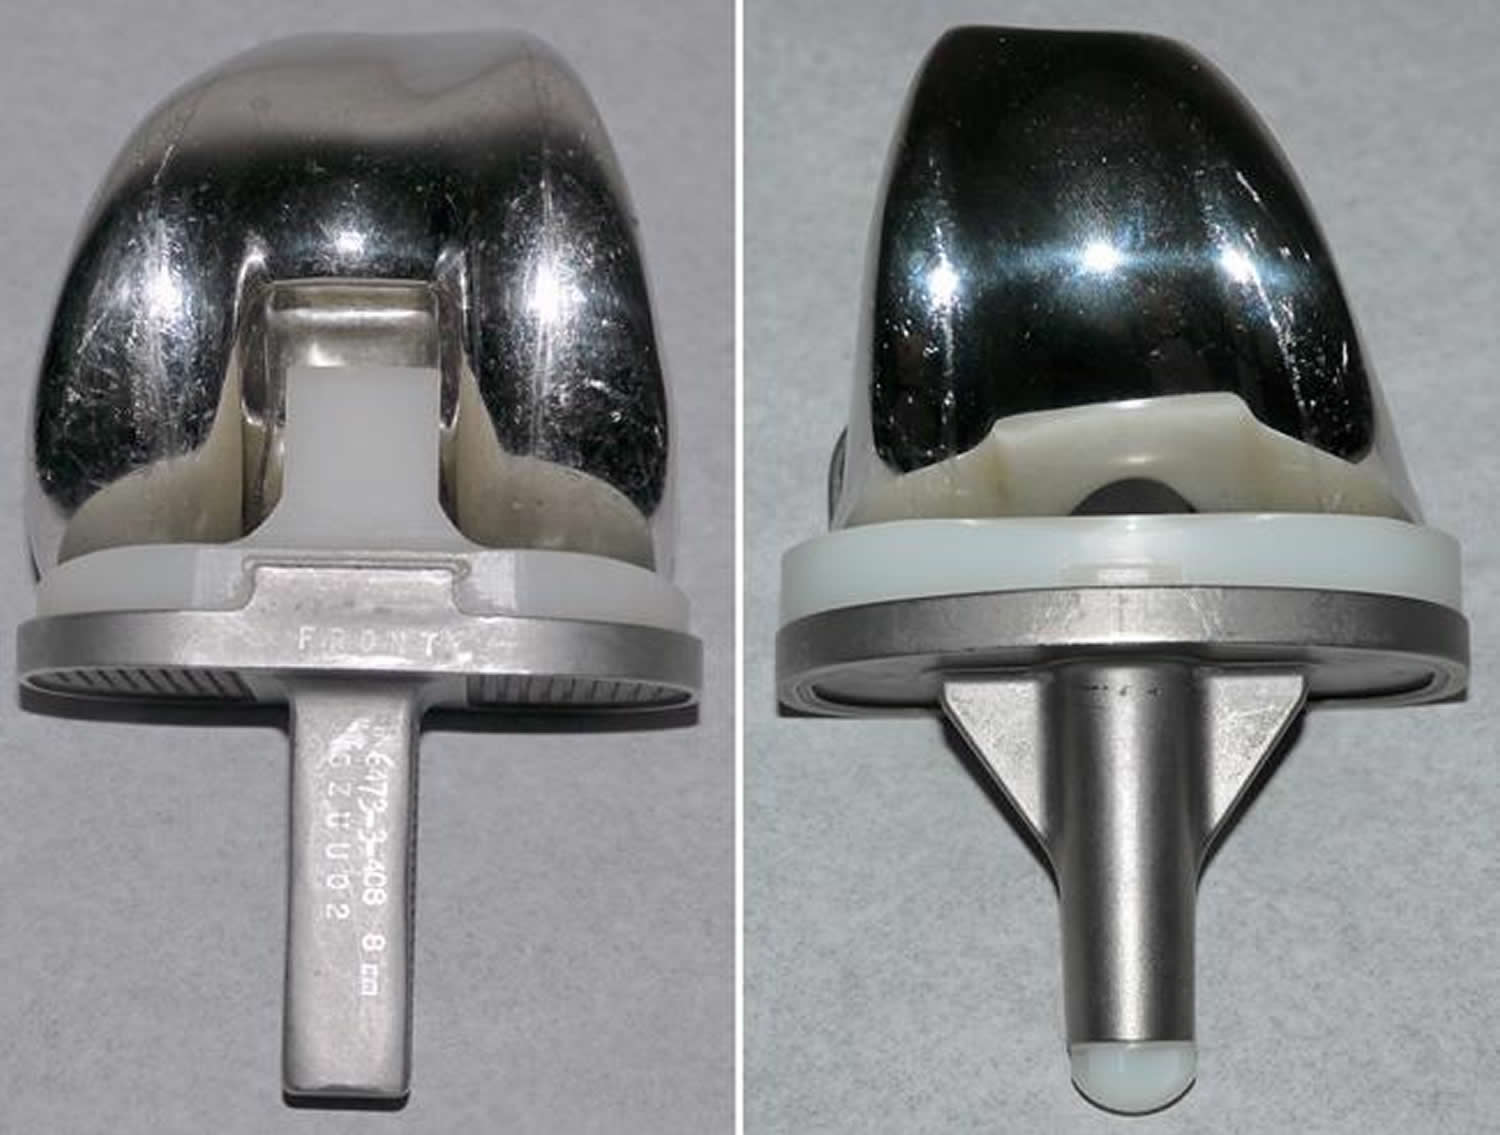 Different types of knee implants